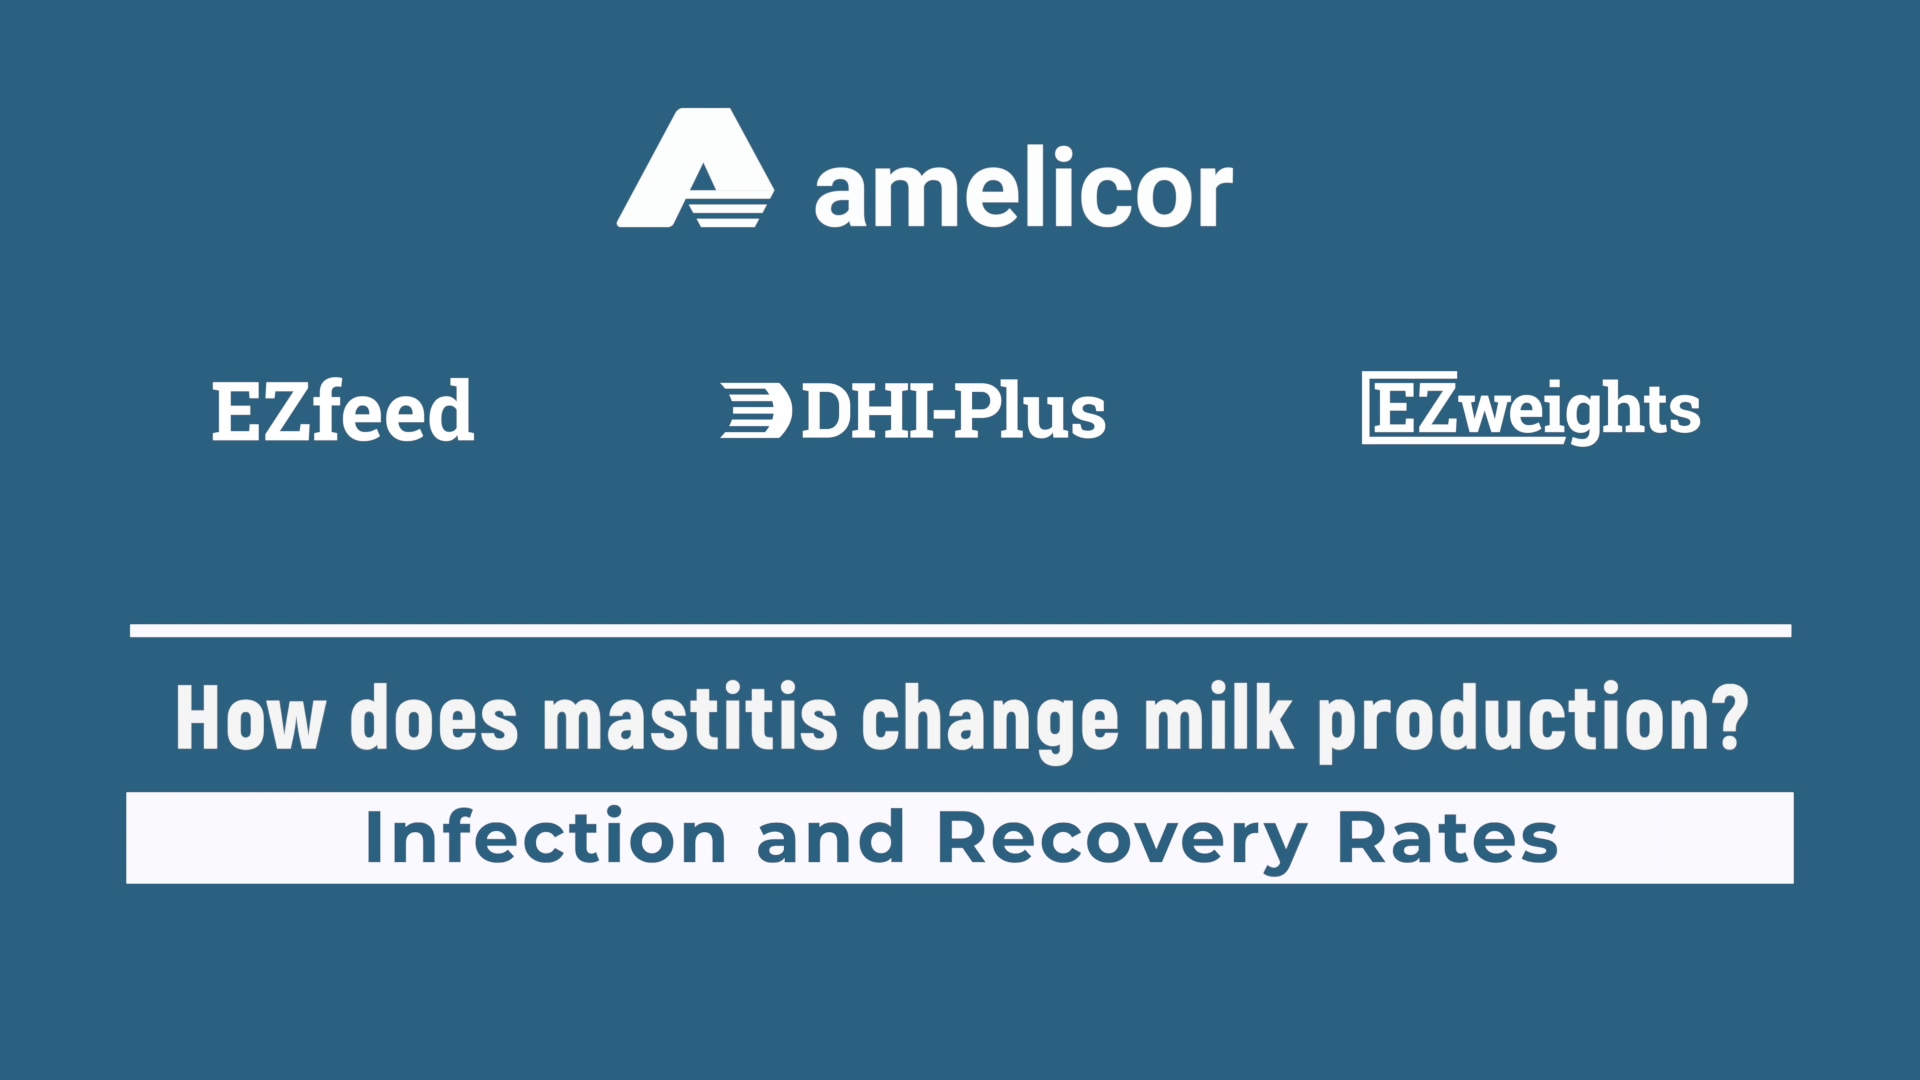 Demo - Infection and Recovery Rates